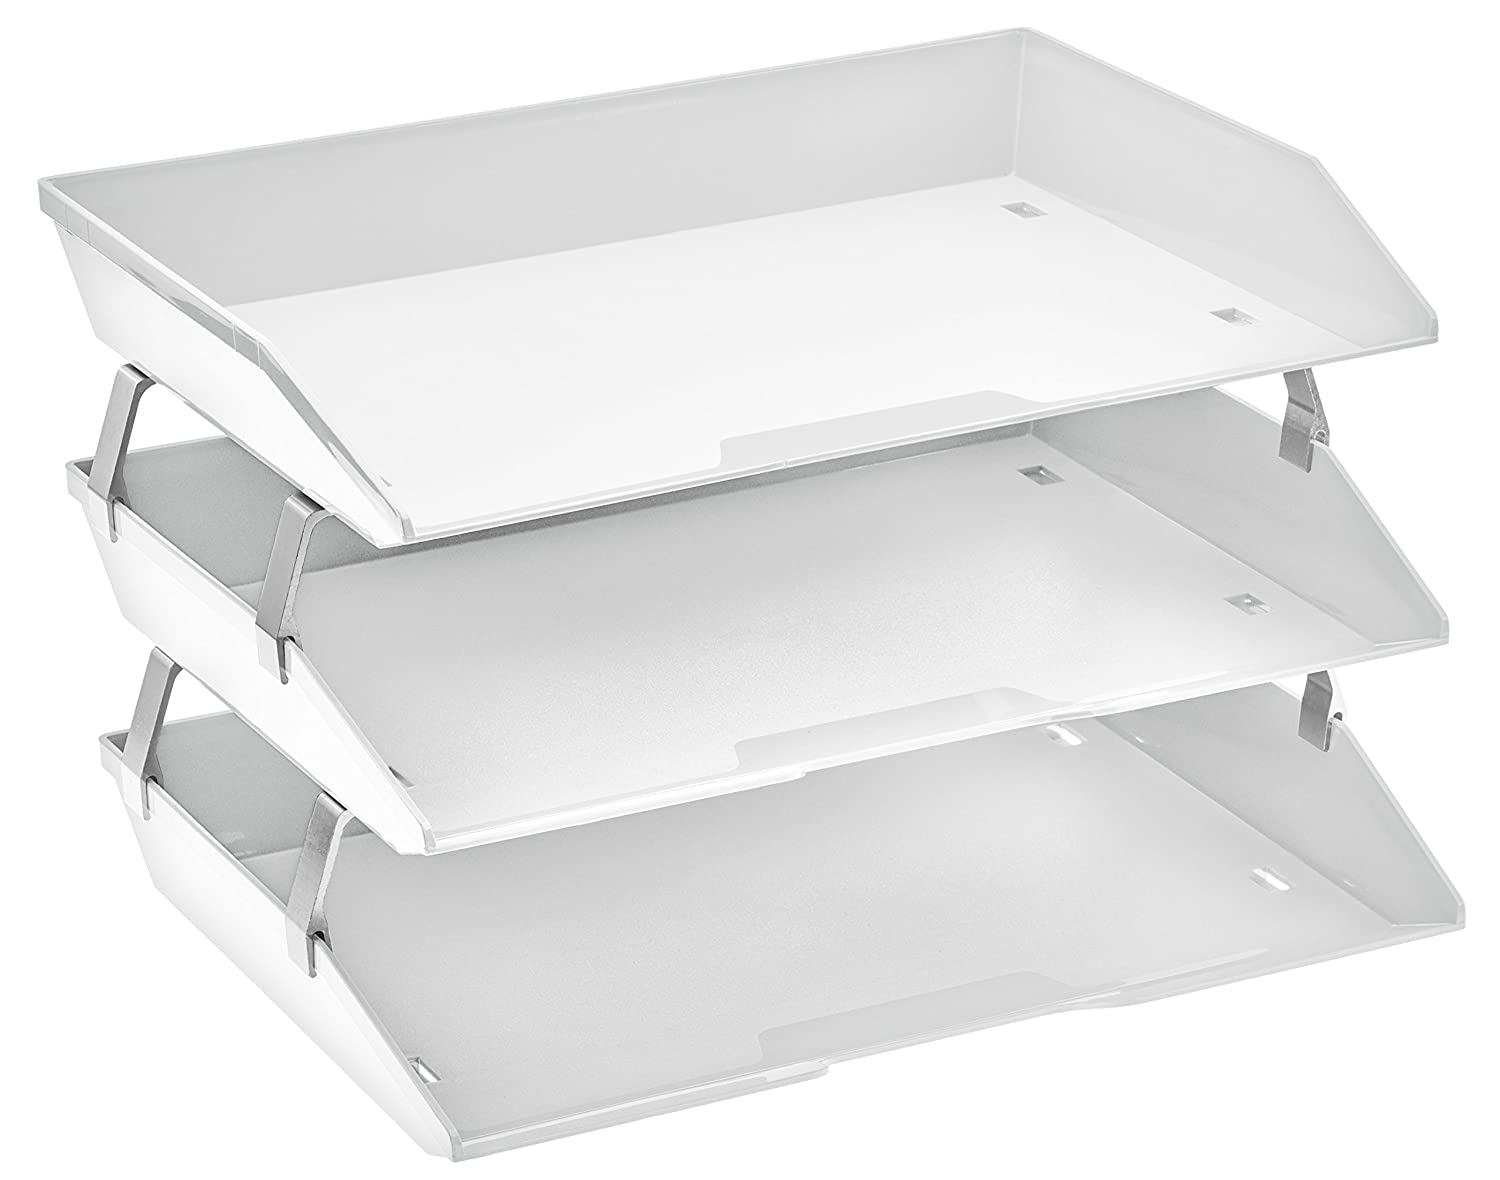 Acrimet Facility 3 Tiers Triple Letter Tray (White Color)